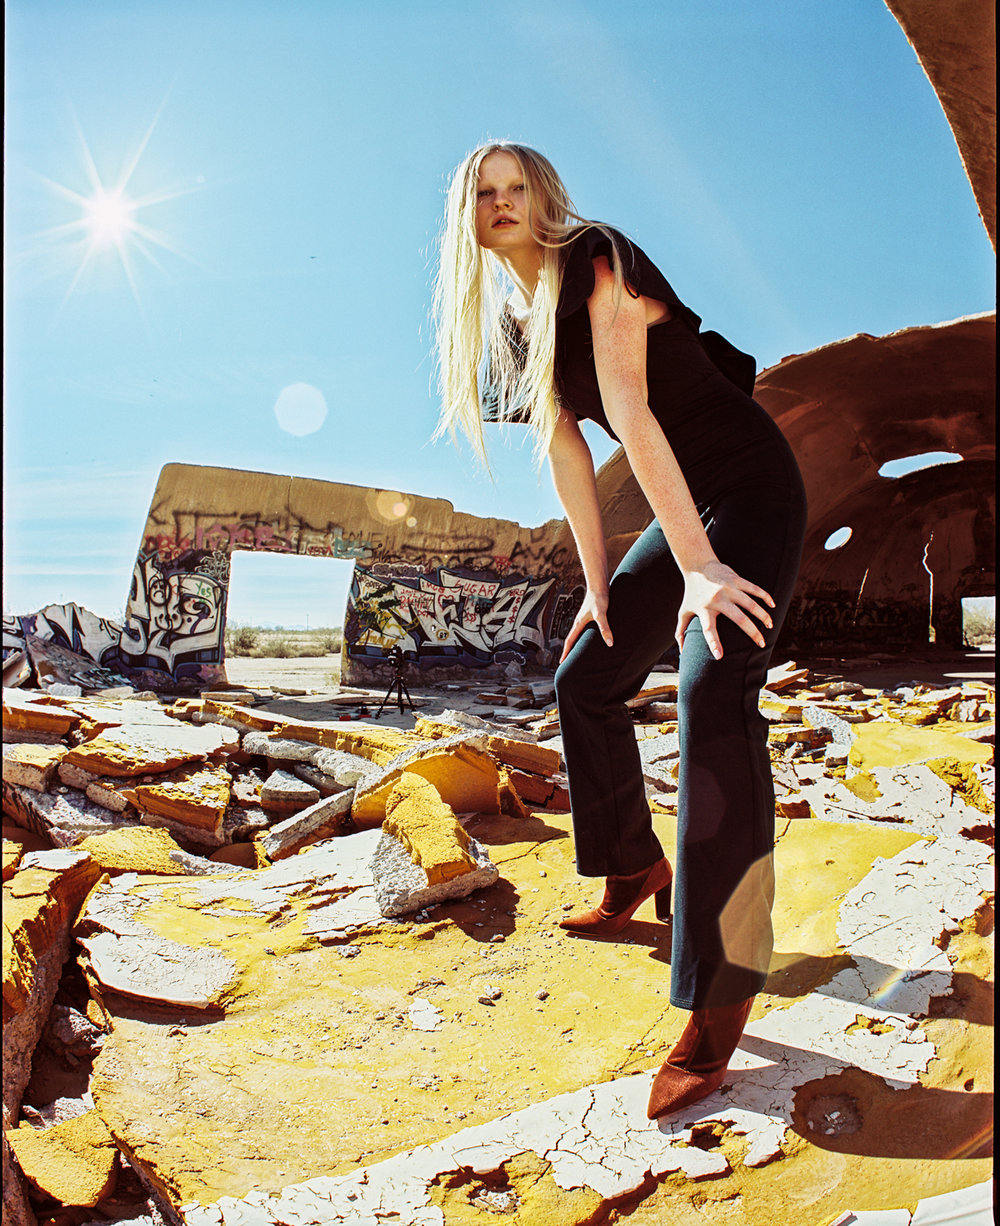 1_Megan_Pentax_67_35mm_fisheye_Lens_Flare_Portra_400_Casa_Grande_Arizona_Domes_Copyright_Taylor_Noel_Photography.jpg